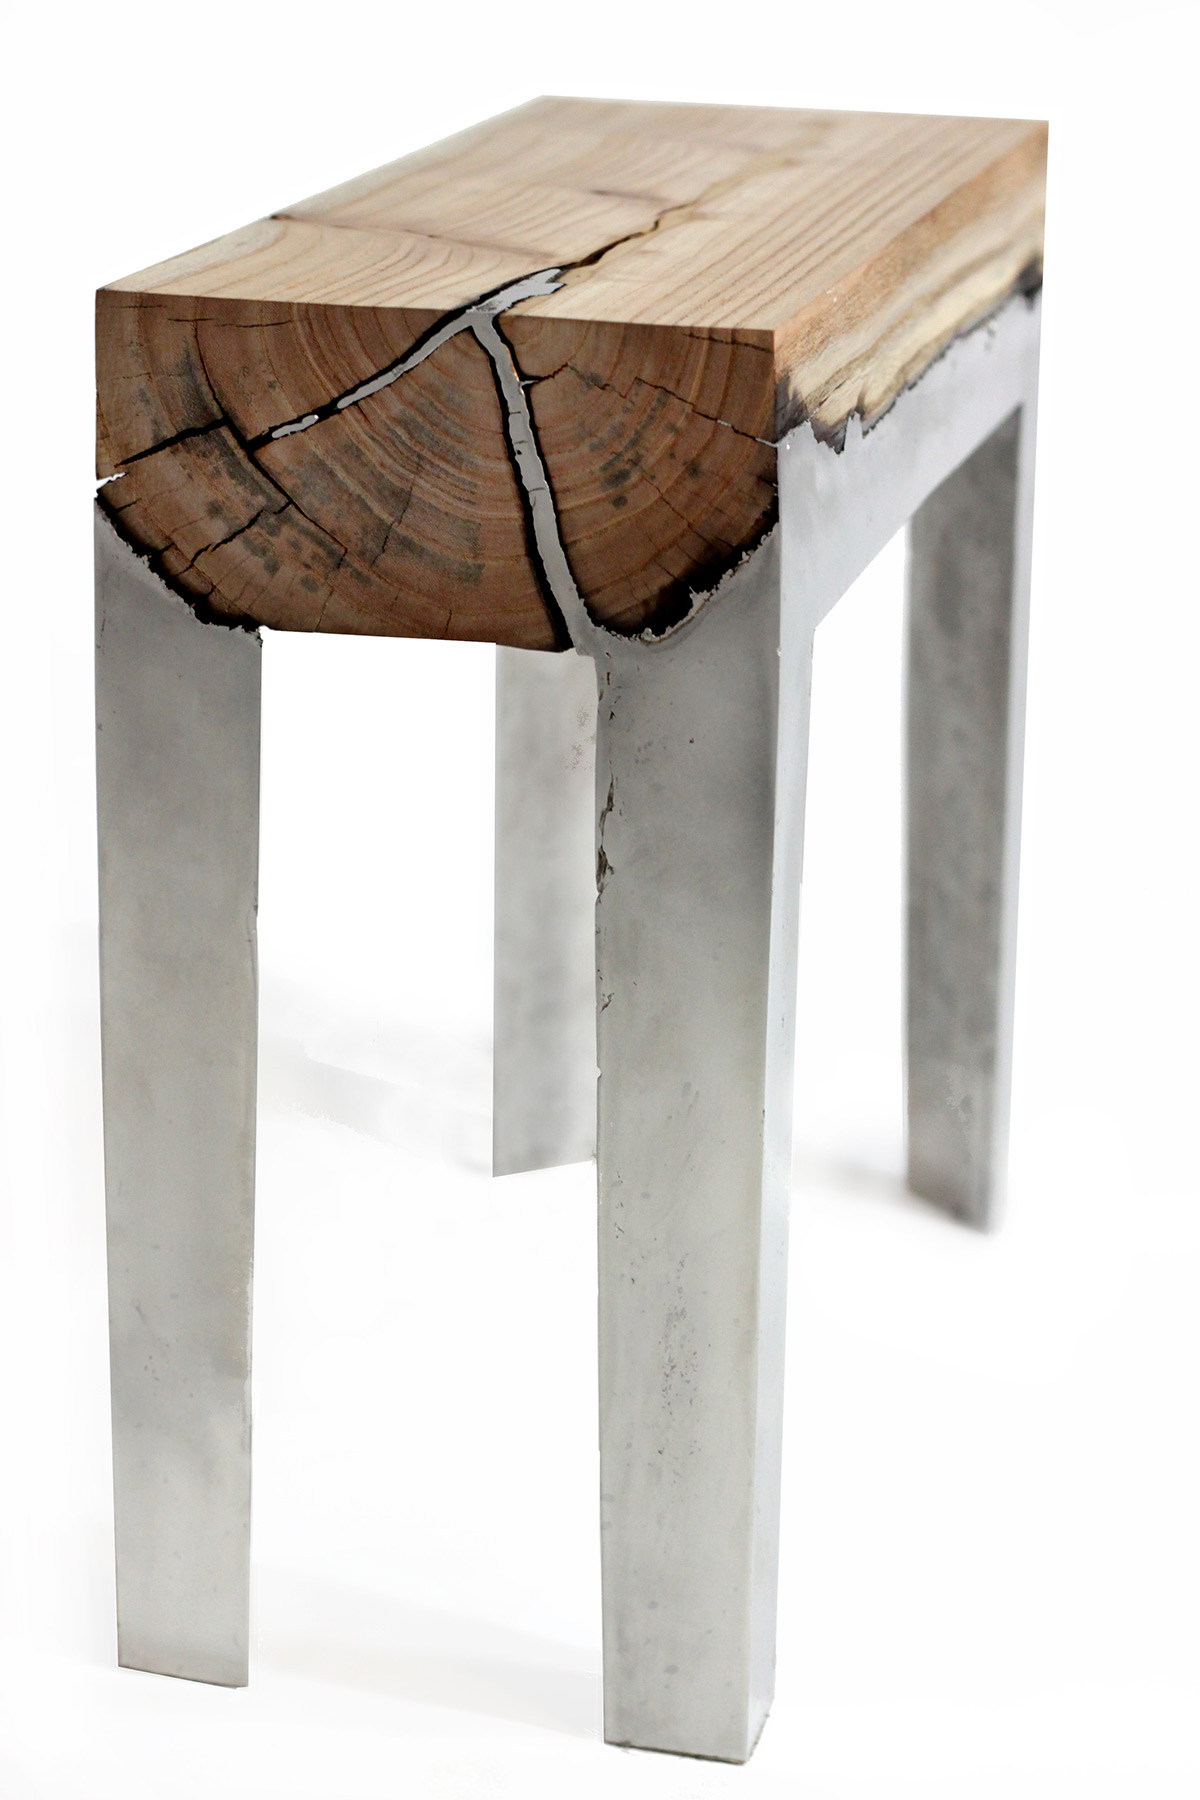 Designer Hilla Shamia Fuses Cast Aluminum and Tree Trunks to Create One-of-a-Kind Furniture Pieces